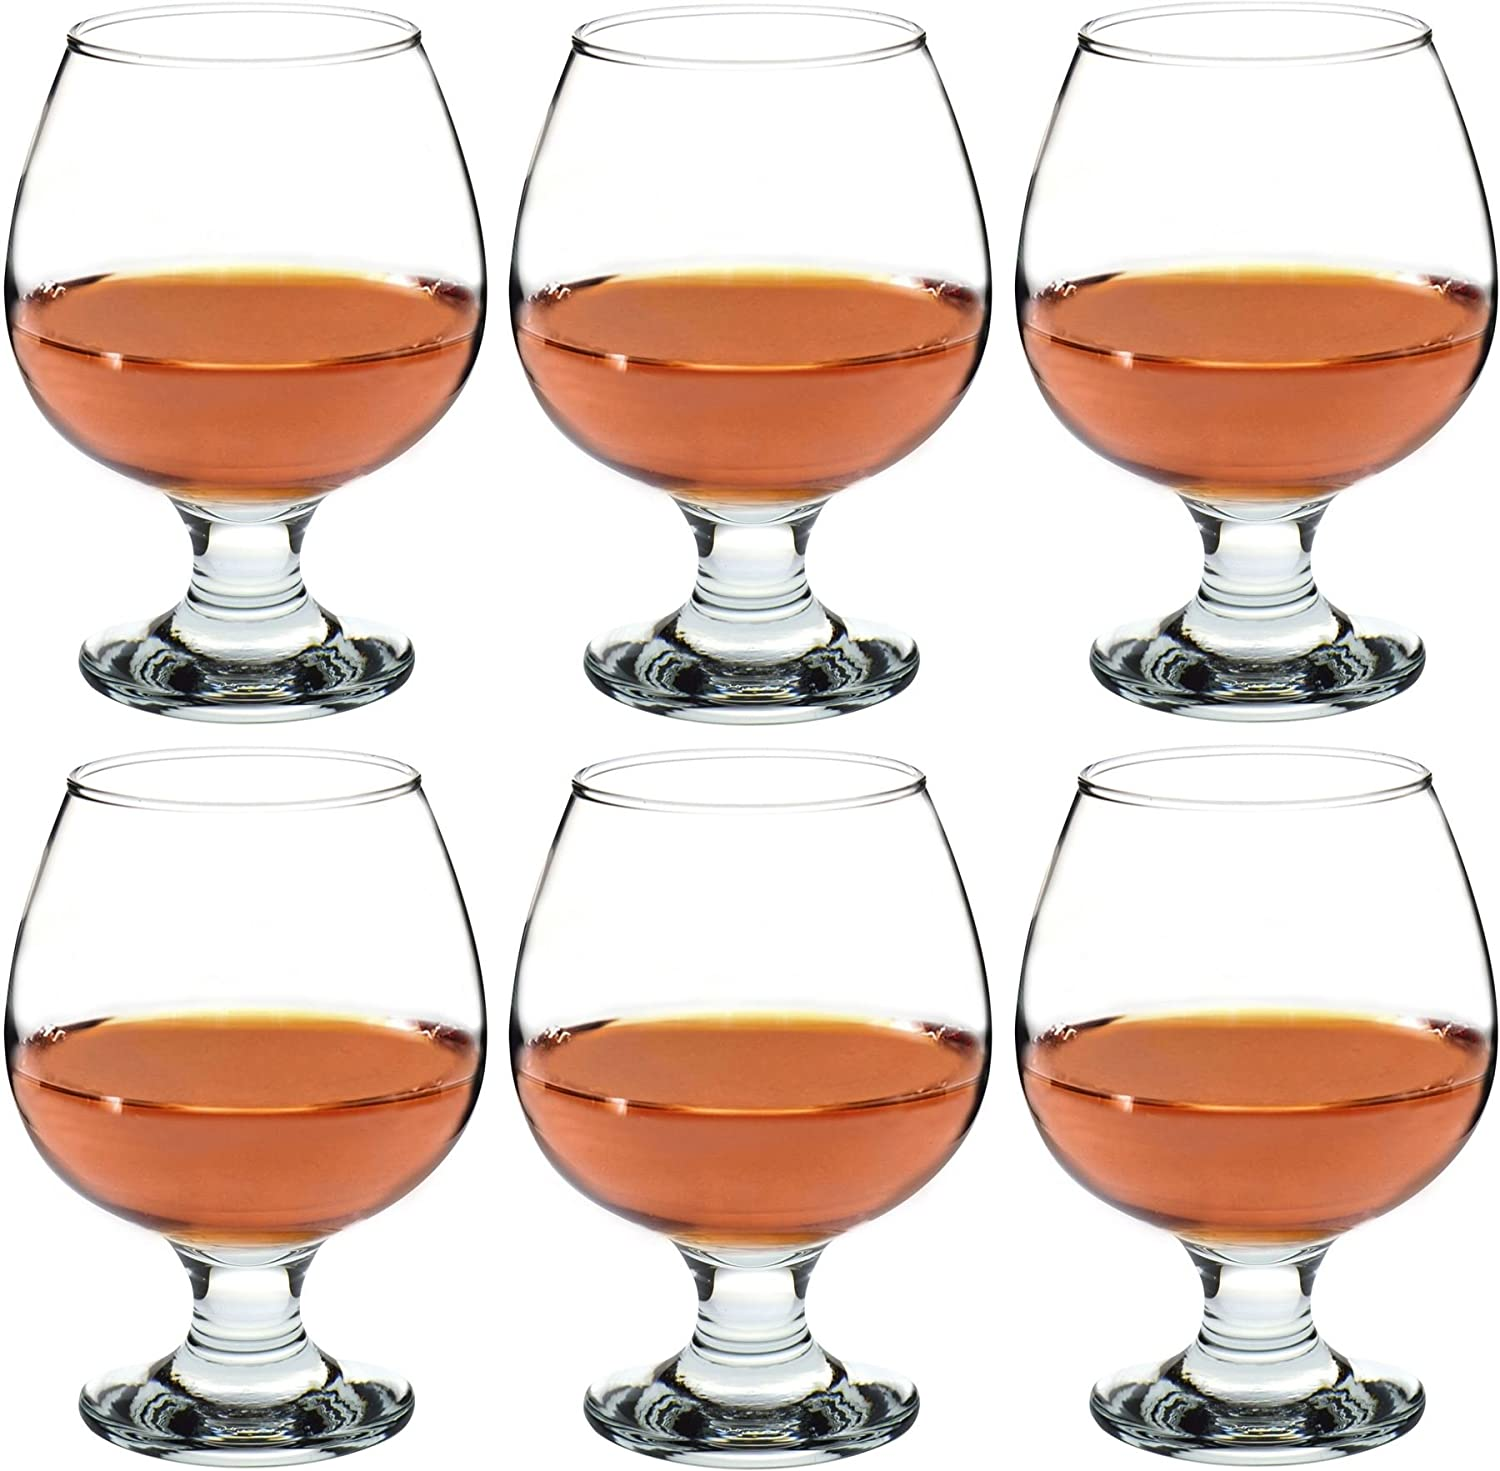 Argon Tableware Brandy/Cognac Snifter Glasses - 390ml (13.7oz) - Pack Of 6 Glasses